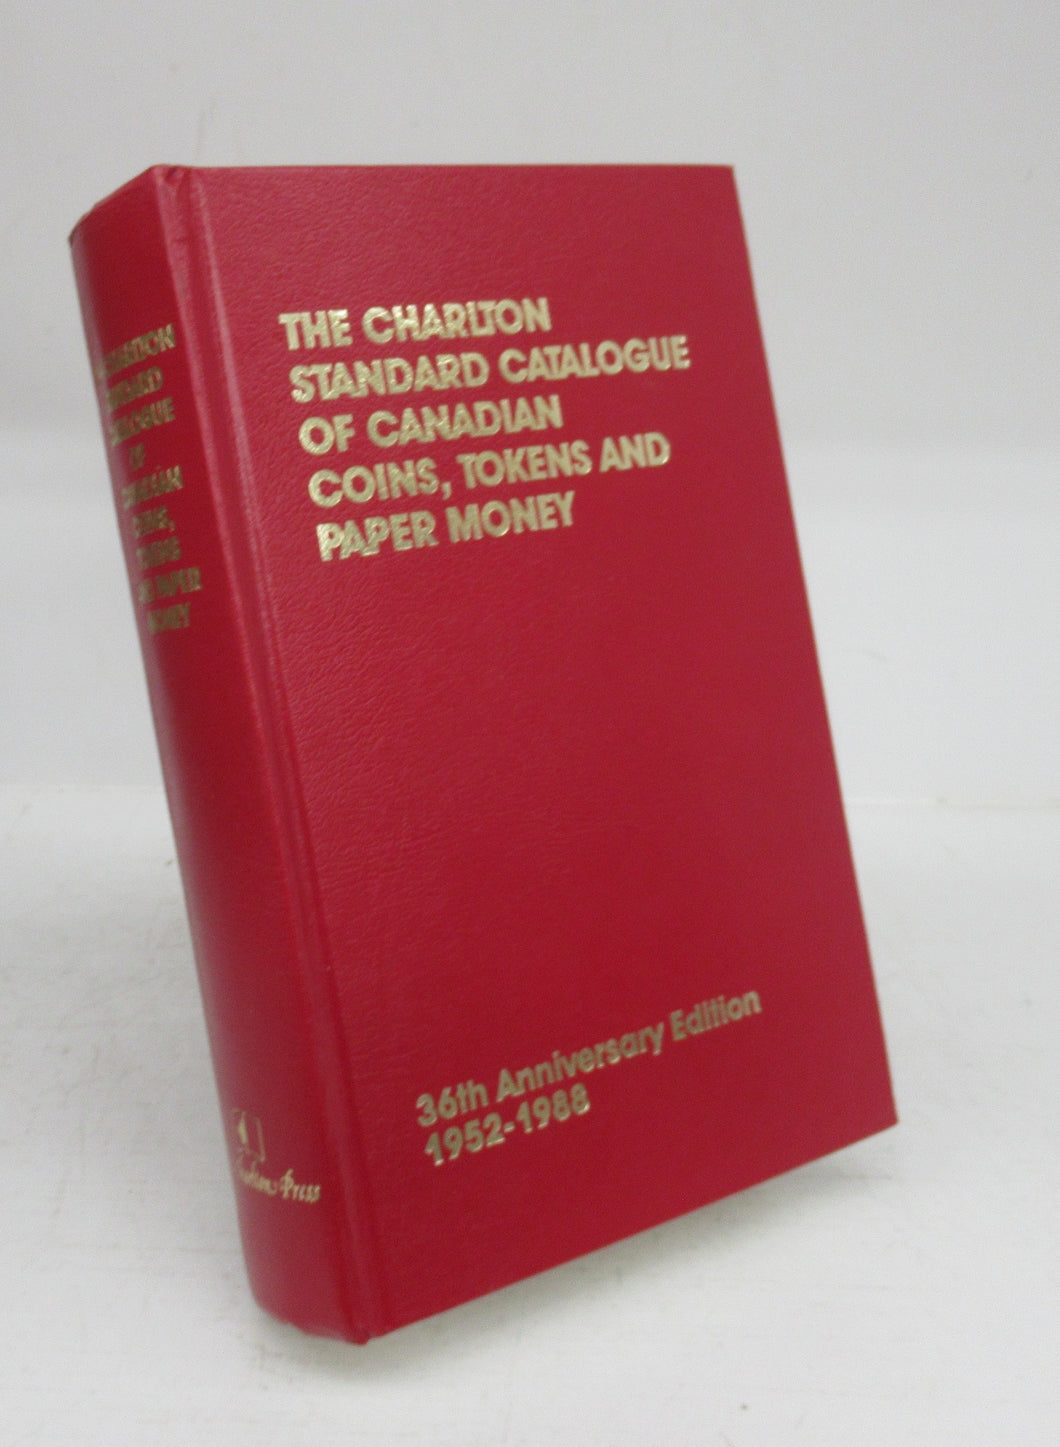 The Charlton Standard Catalogue of Canadian Coins, Tokens and Paper Money. 36th Anniversary Edition 1952-1988